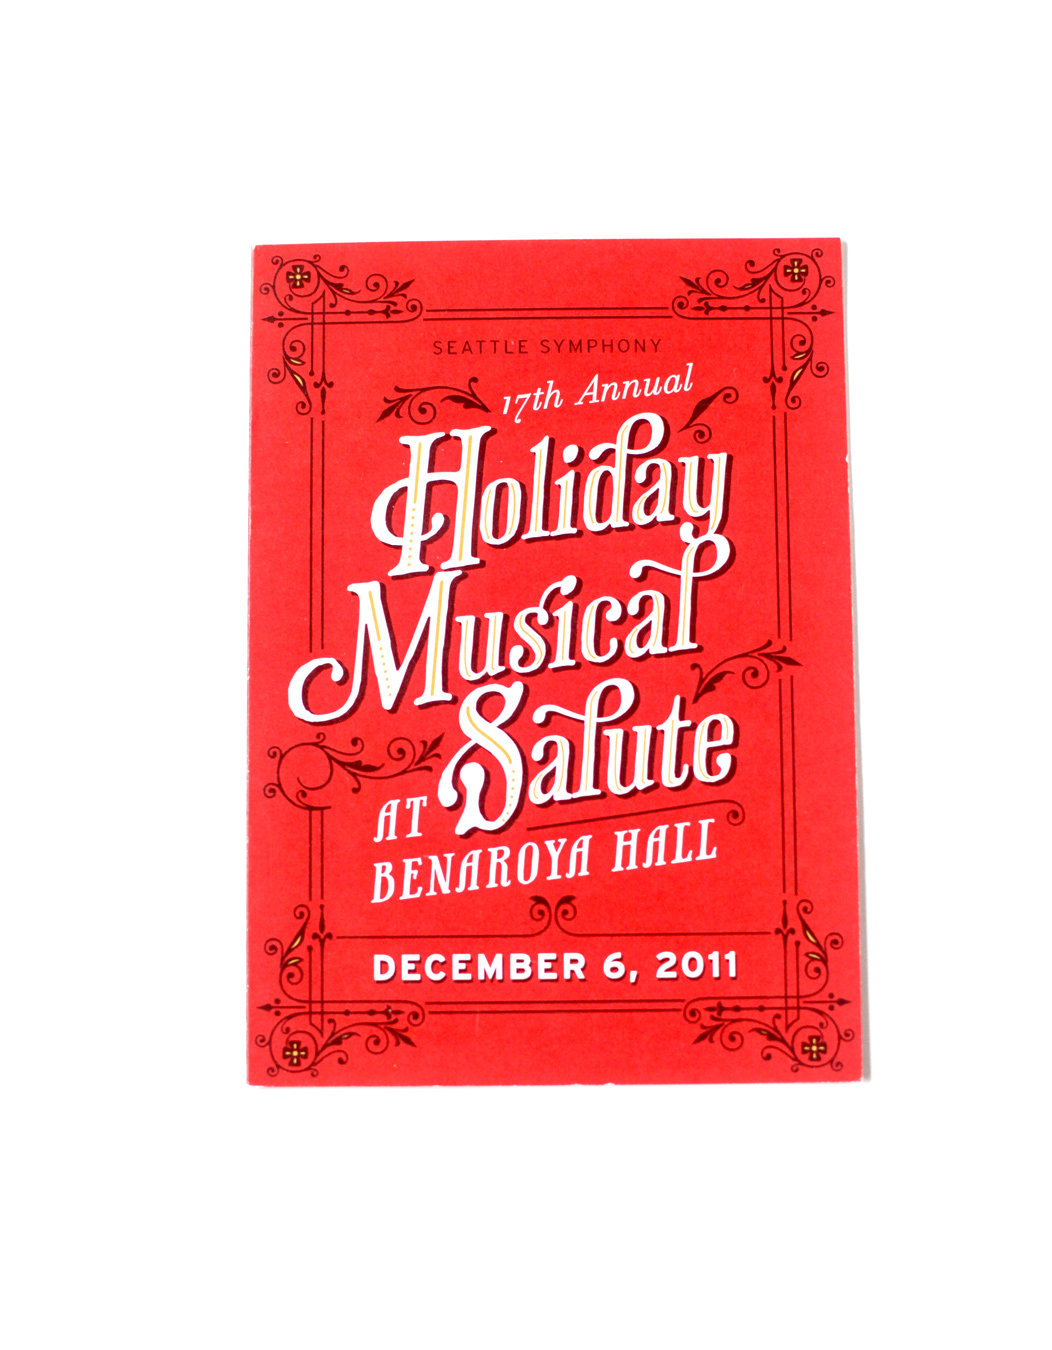 HolidayMusicalSalute2011invitationCover_IwonaK